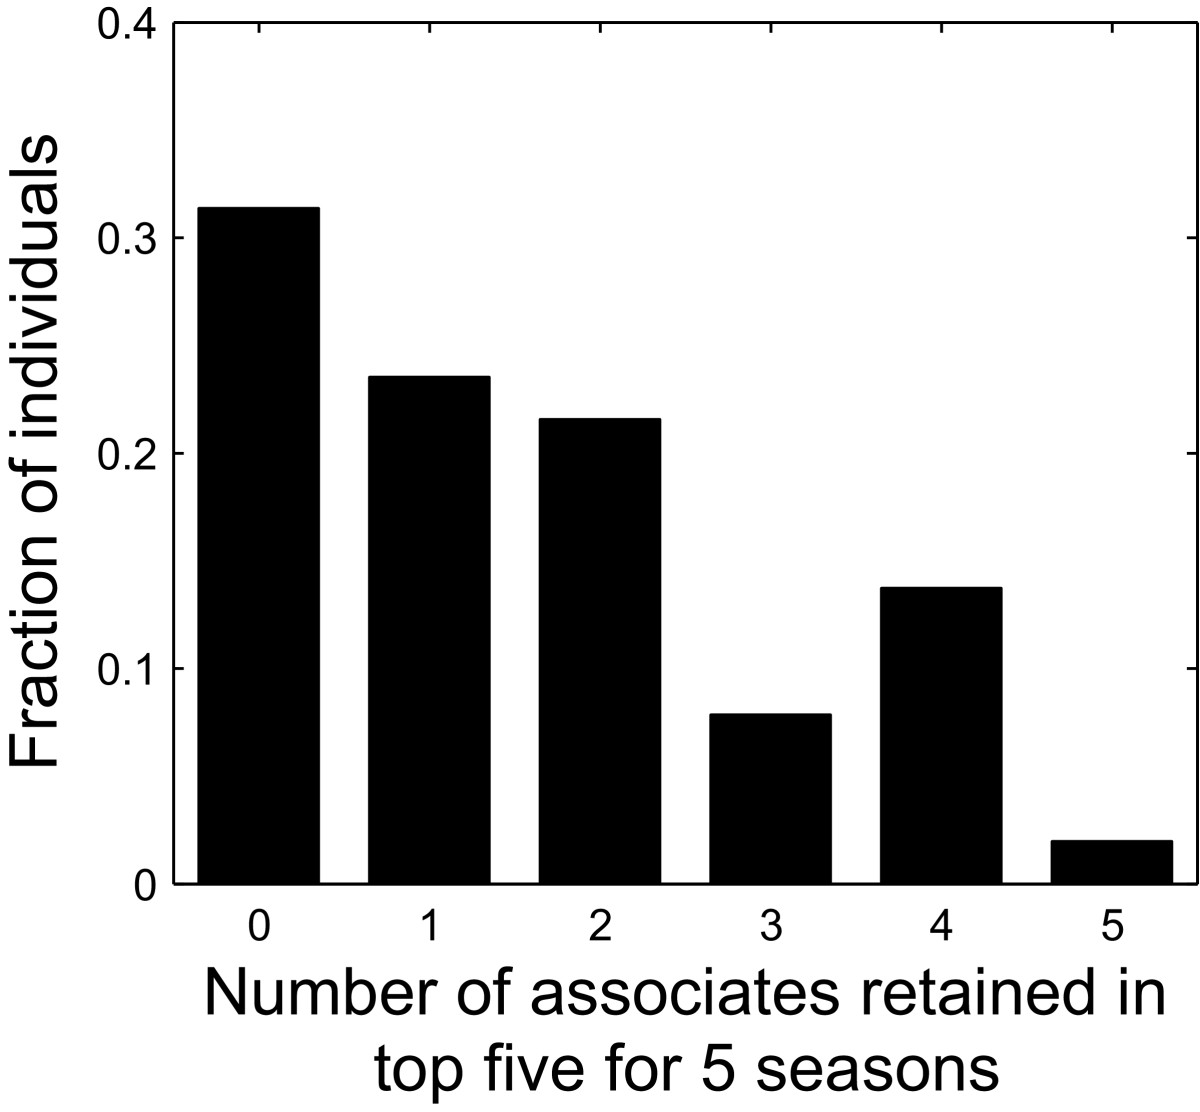 http://static-content.springer.com/image/art%3A10.1186%2F1472-6785-11-17/MediaObjects/12898_2011_Article_177_Fig3_HTML.jpg